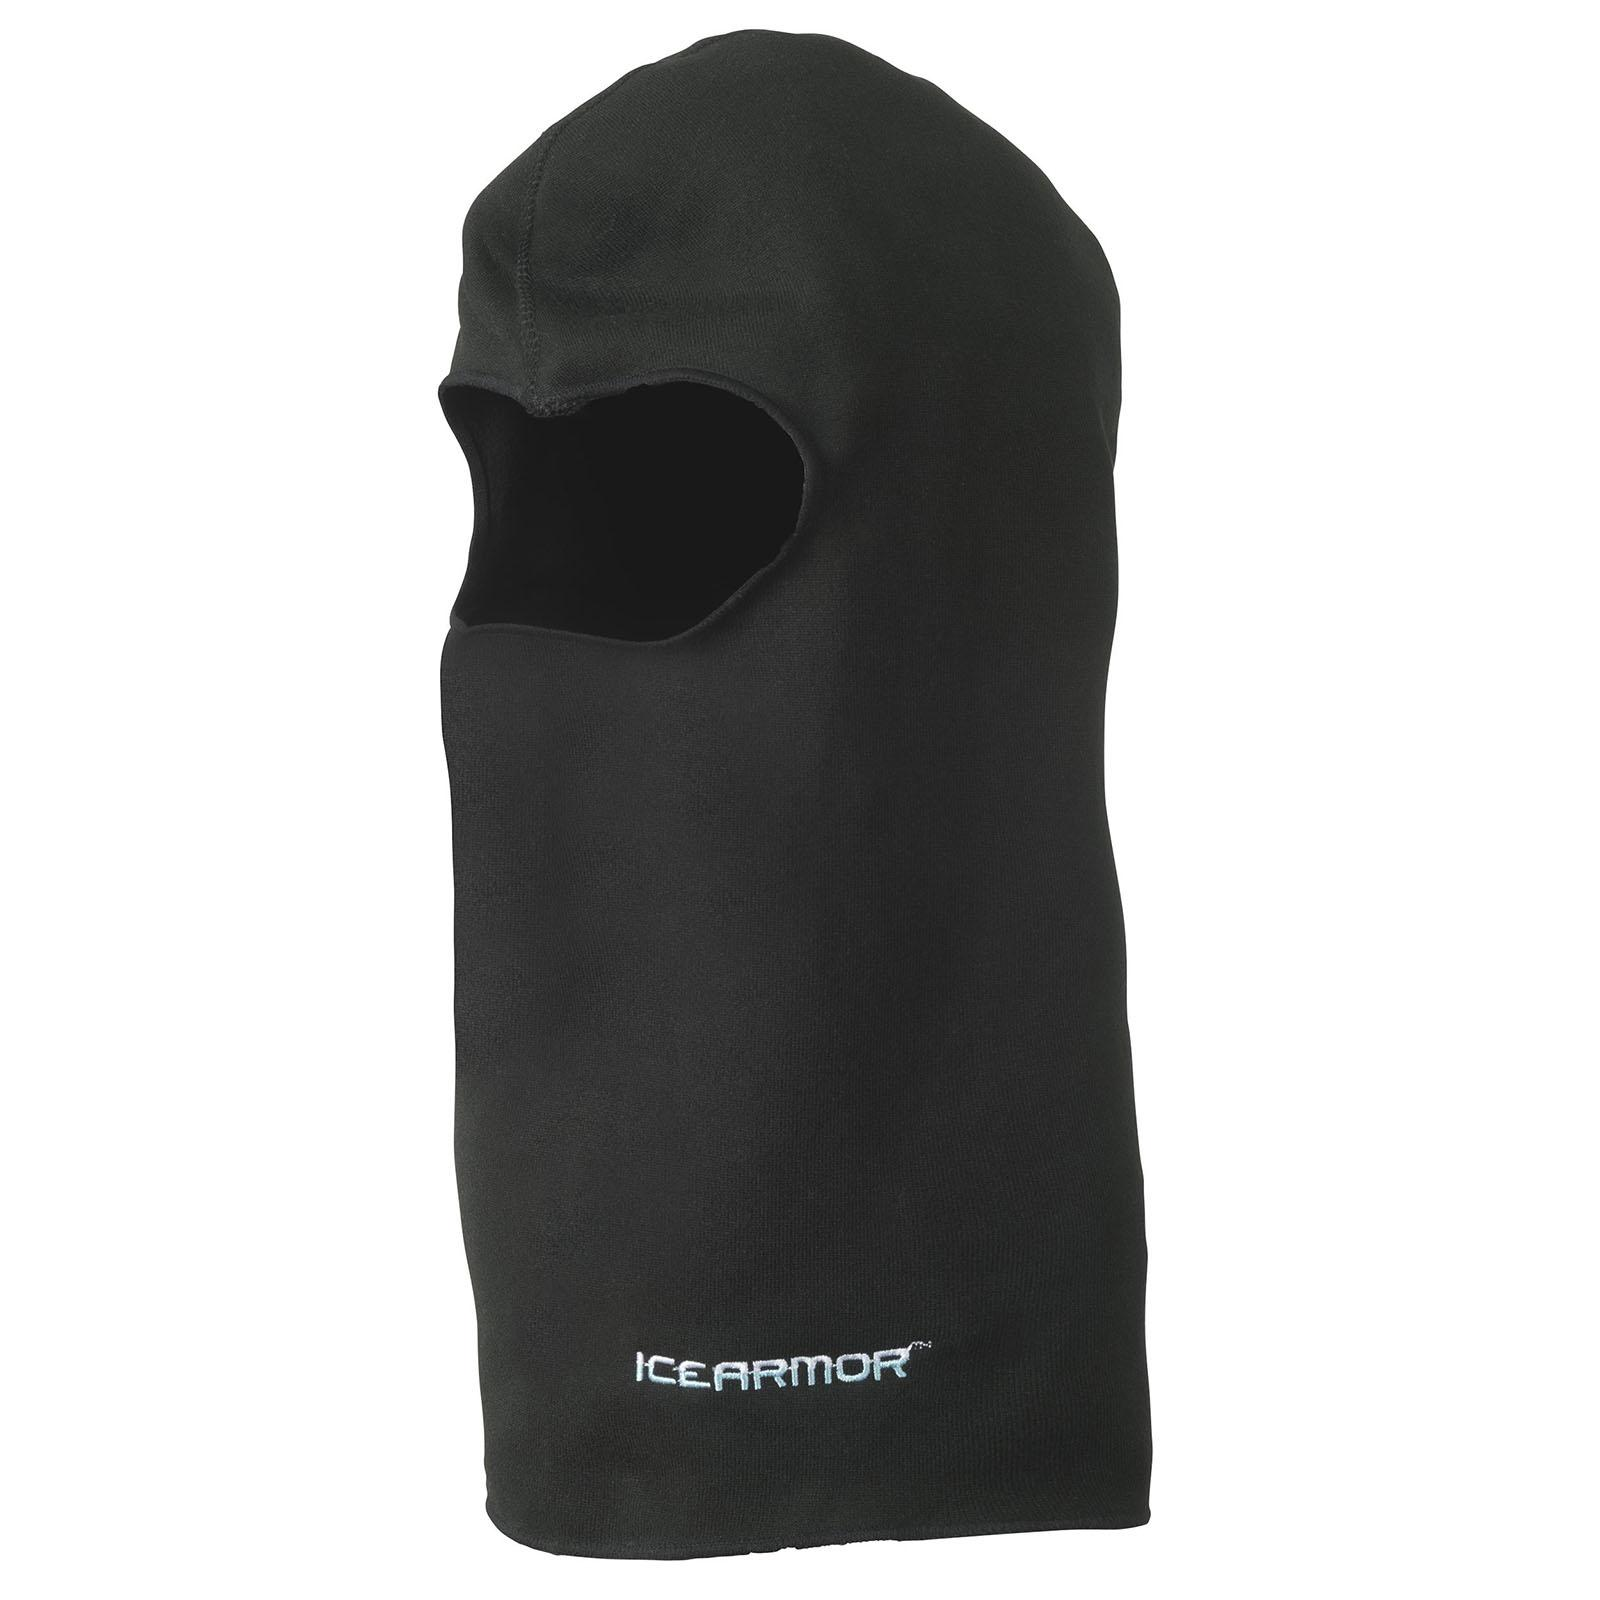 IceArmor Fleece Face Mask